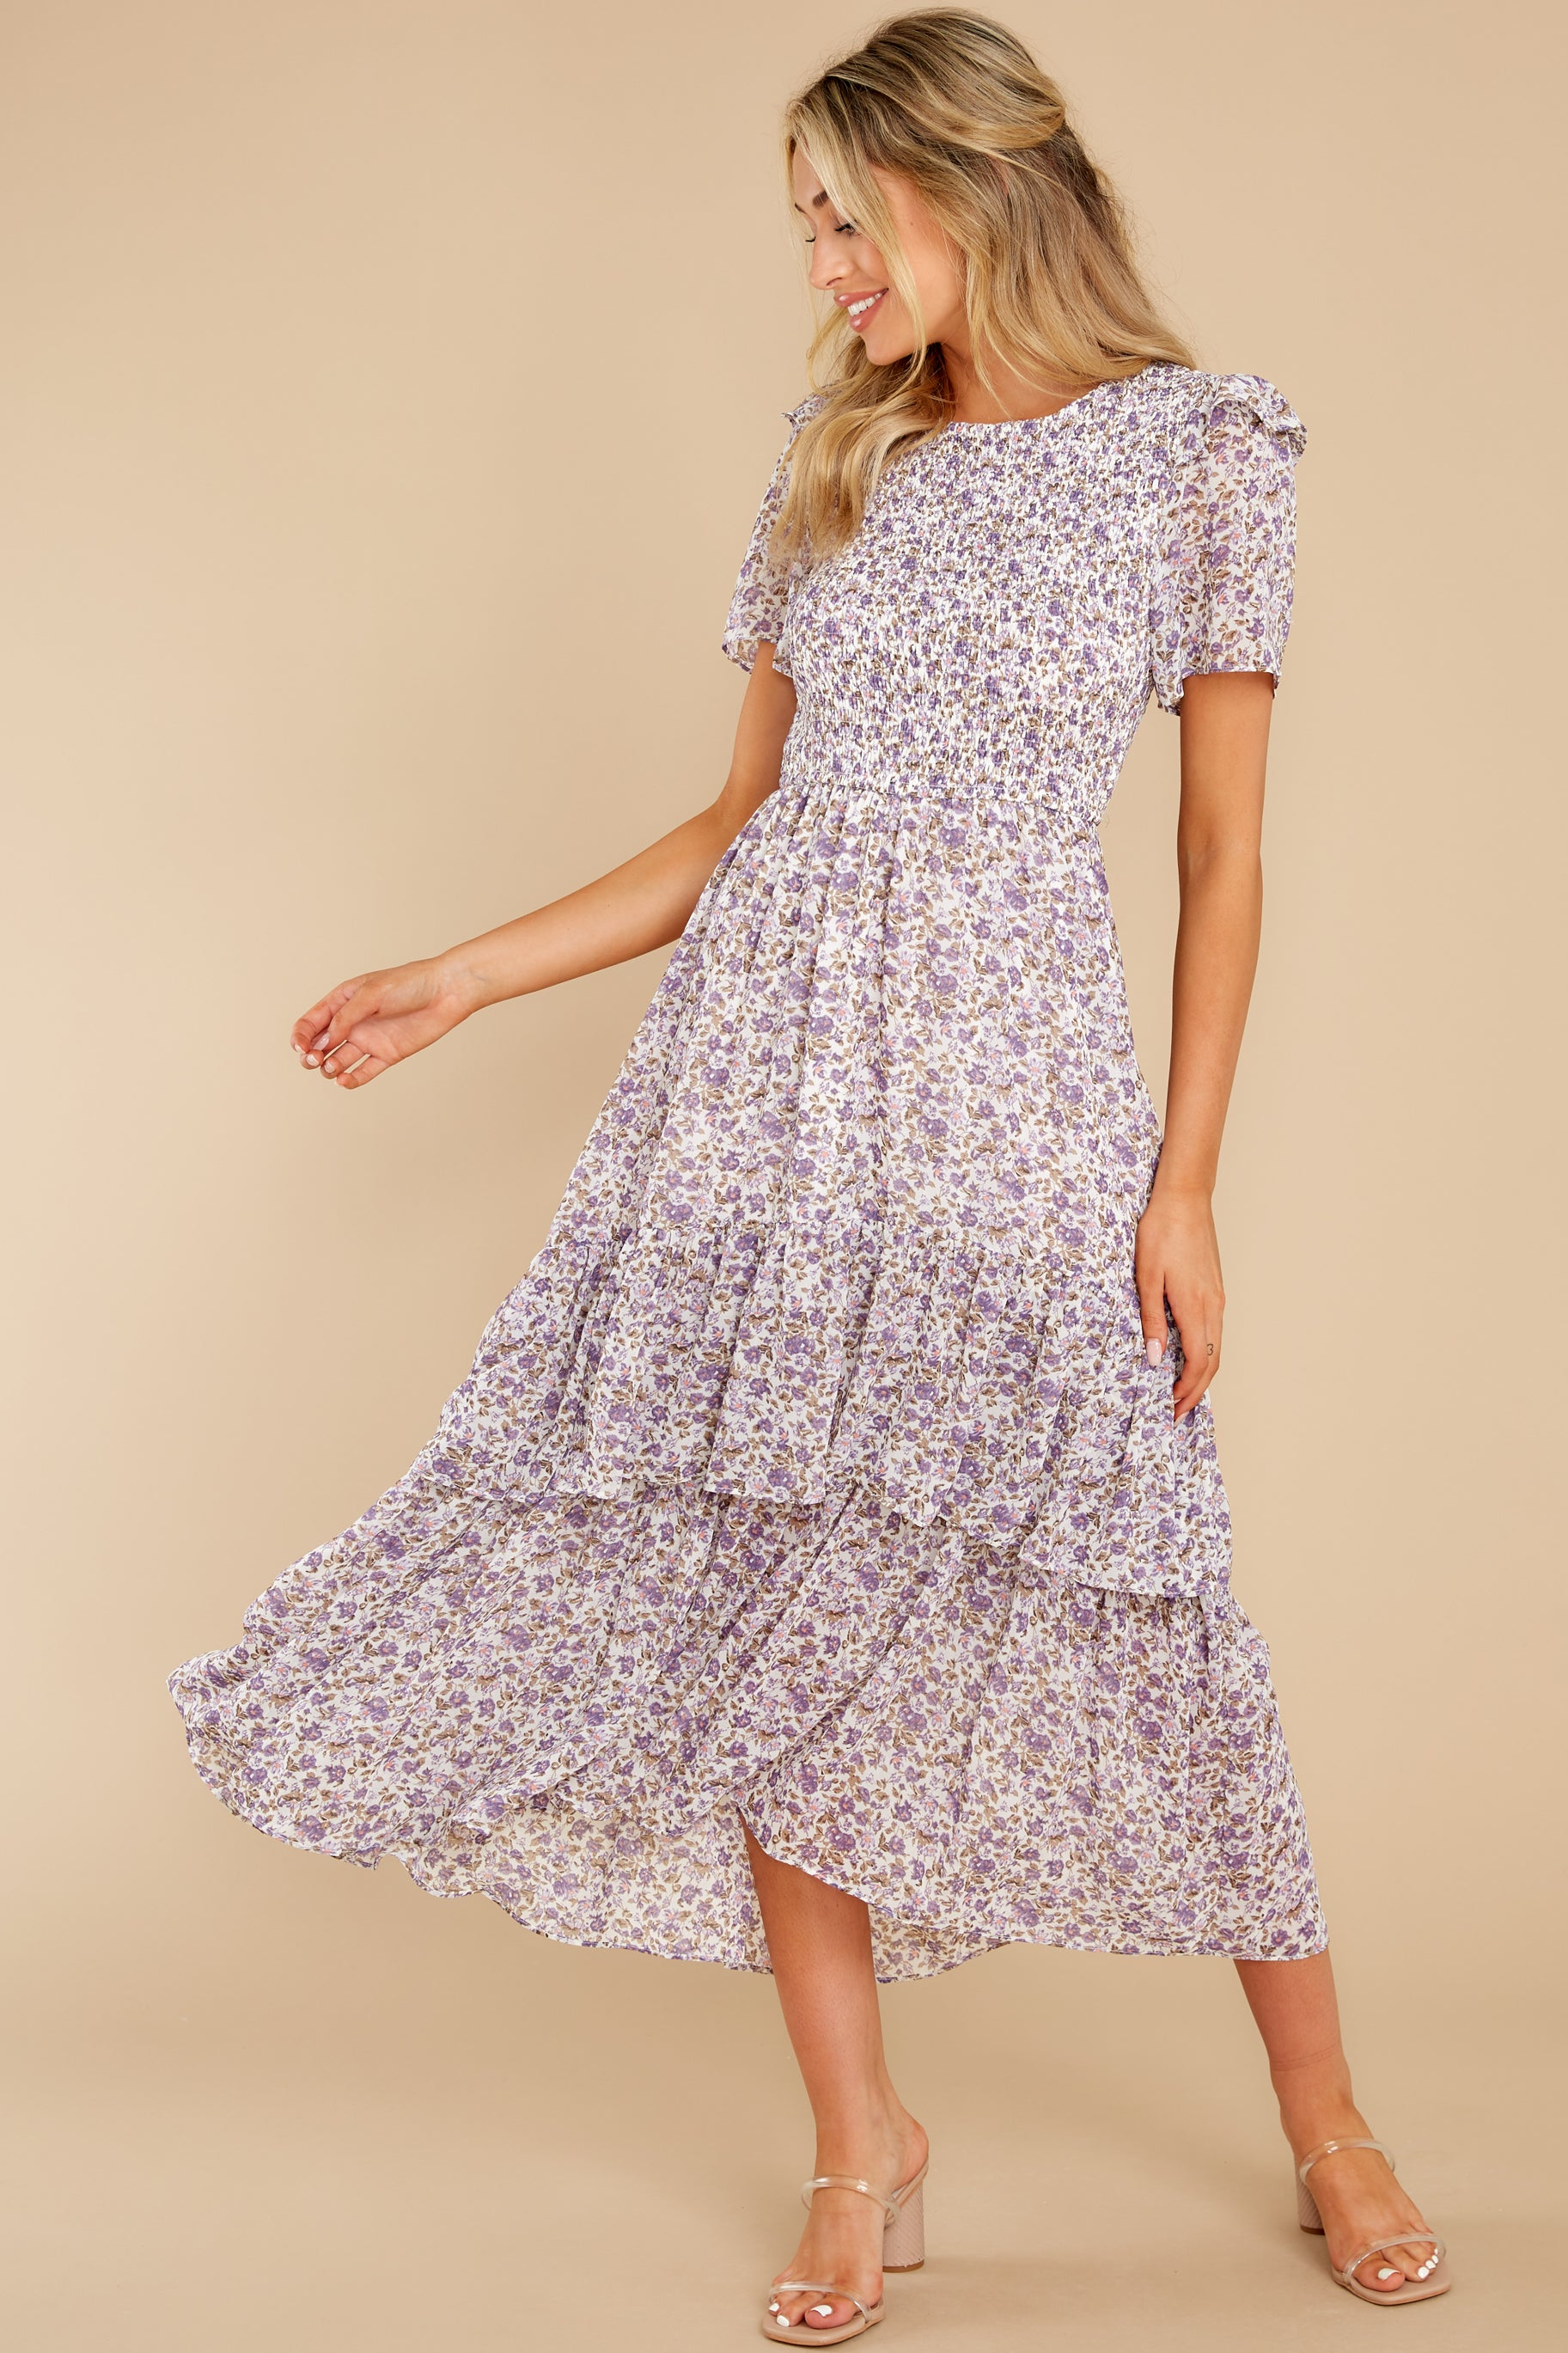 4 Magnetic Attraction Purple Floral Print Maxi Dress at reddress.com